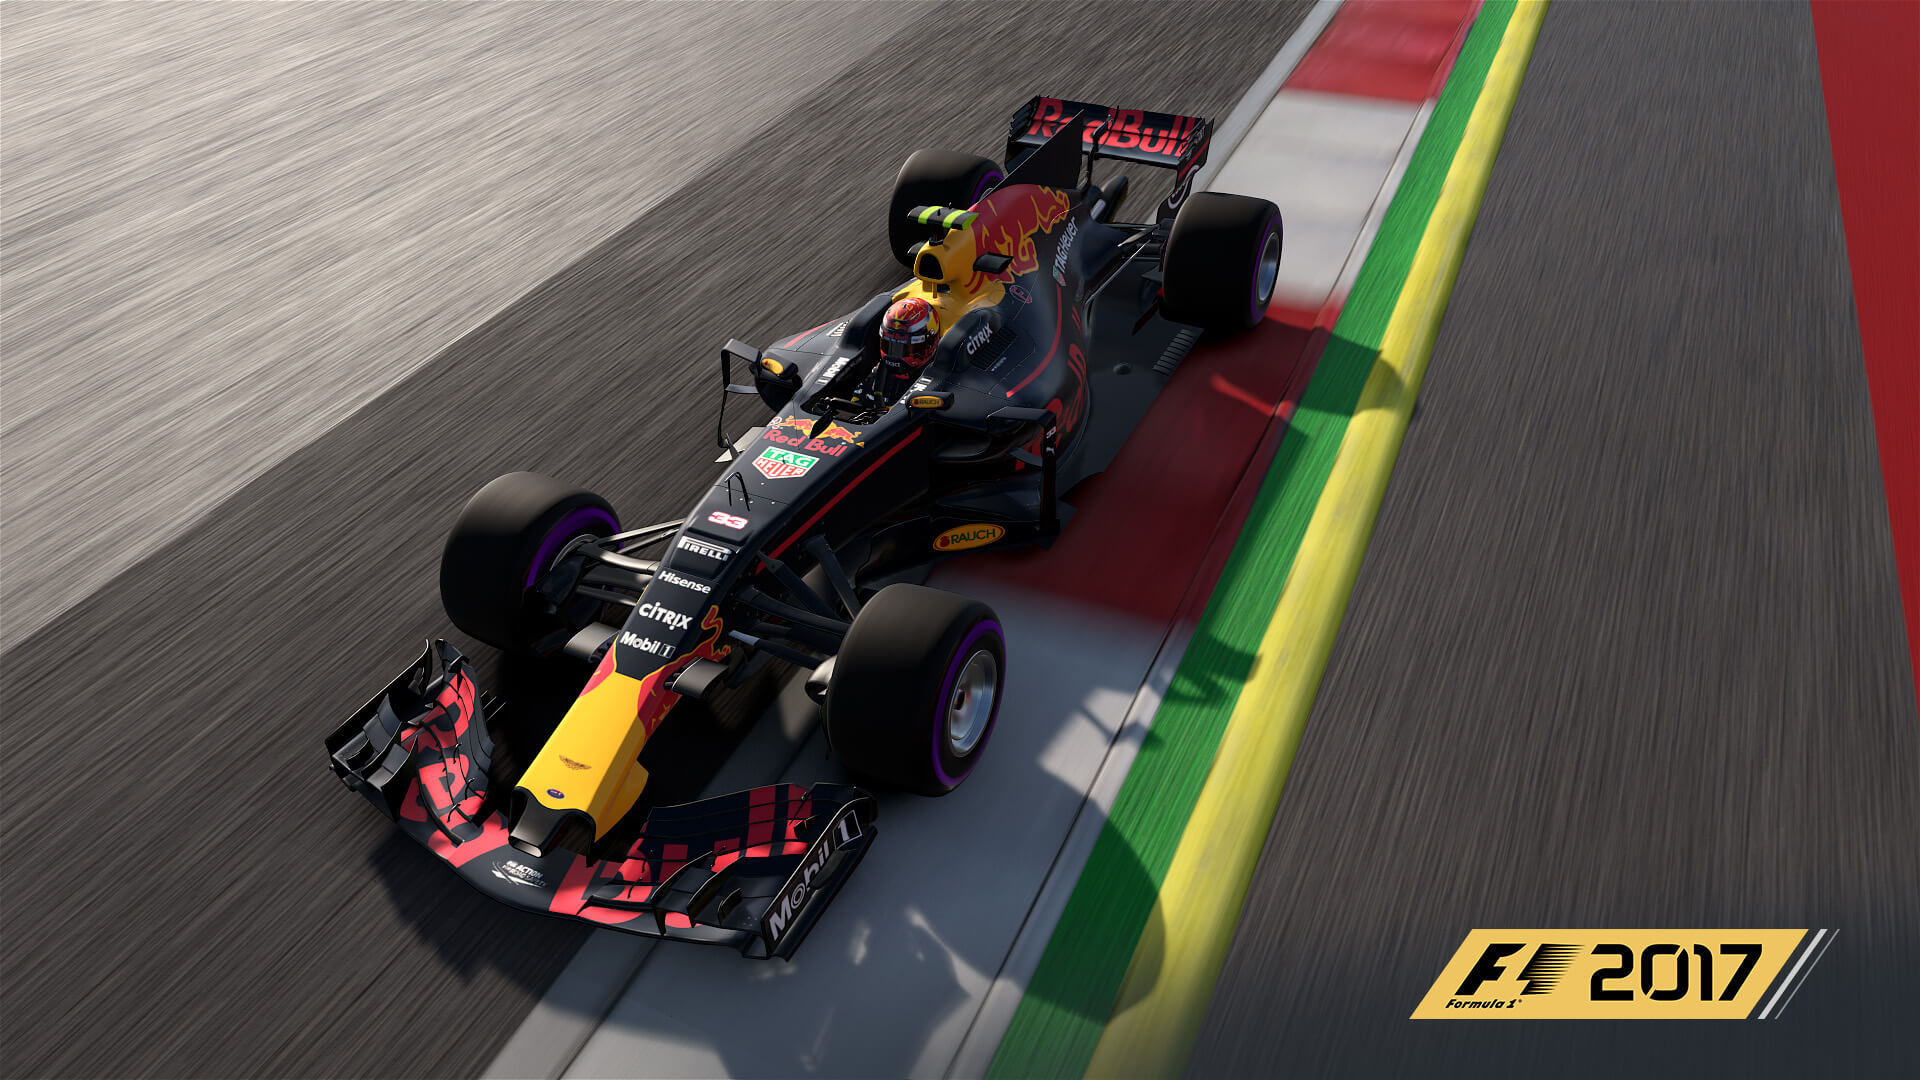 Hacked Version Of The Game F1 2017 For PS4